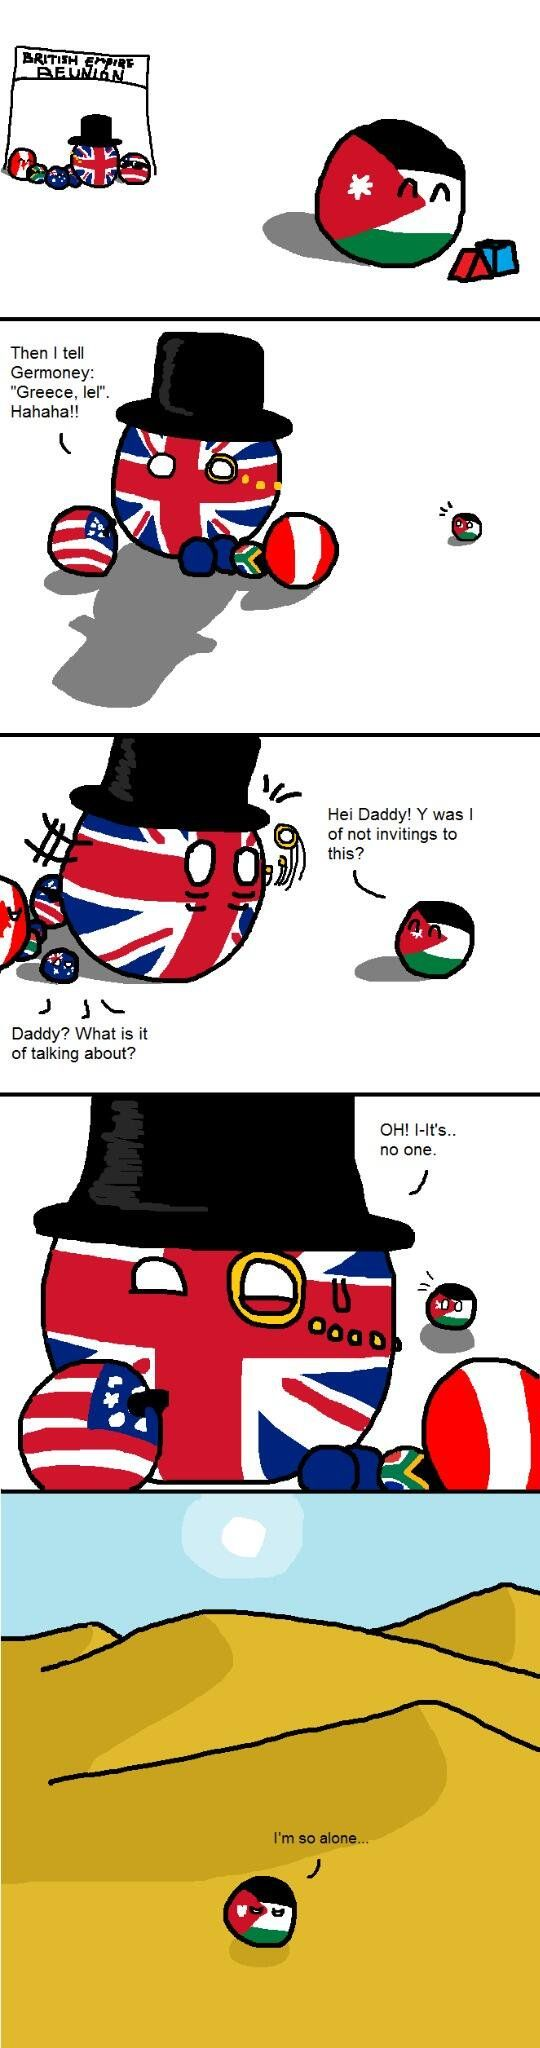 "Jordanball on Twitter: ""The daily of comics. #polandball #jordanball #jordan #meme #followme #follow #meow #UKBall #wtf #UK #Commonwealth http://t.co/9STvRctGzm"""